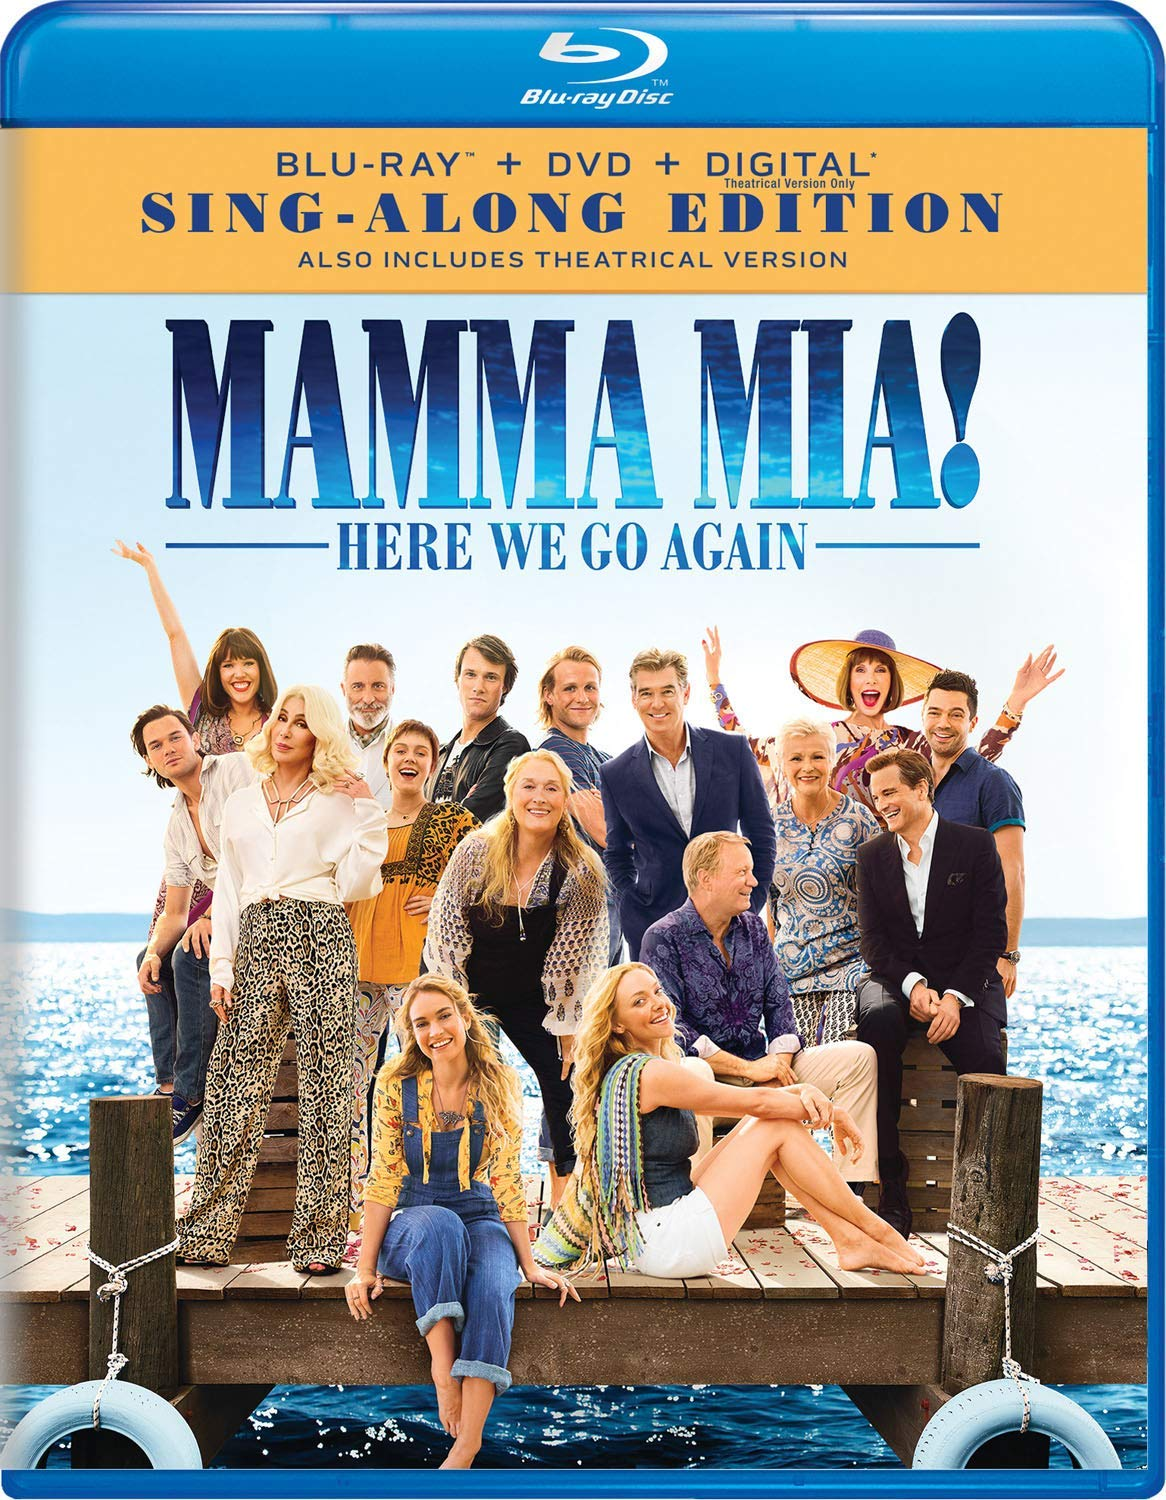 Mamma Mia! The Movie [Movie] - Mamma Mia! Here We Go Again